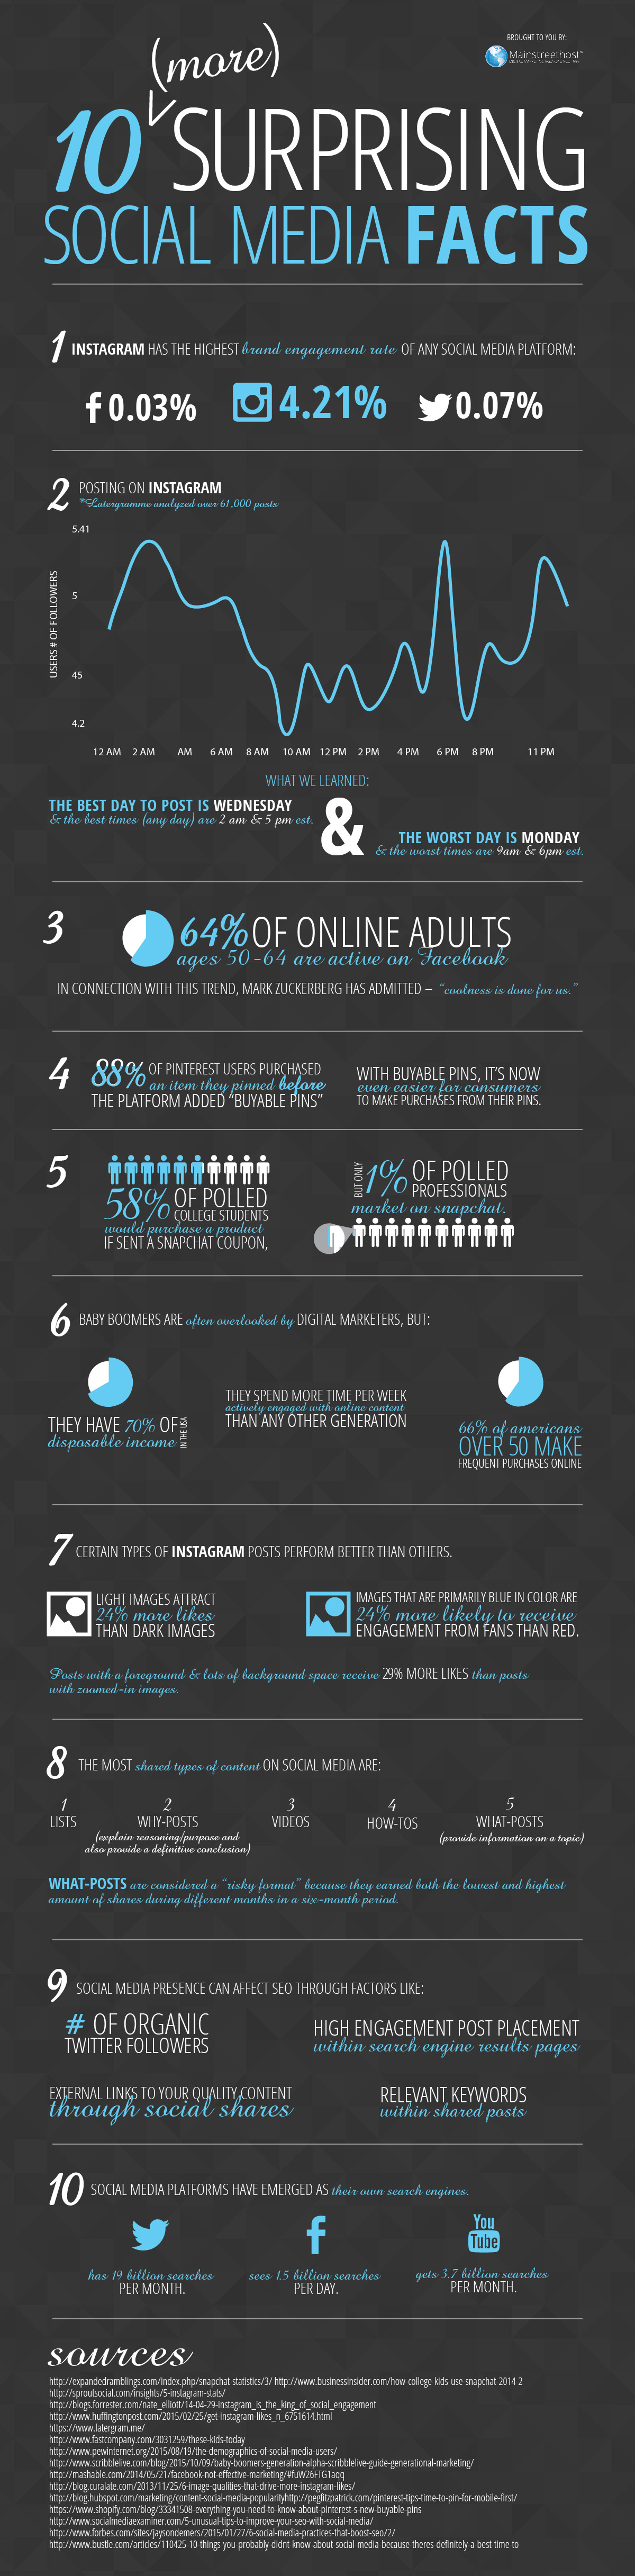 Surprising Social Media Facts